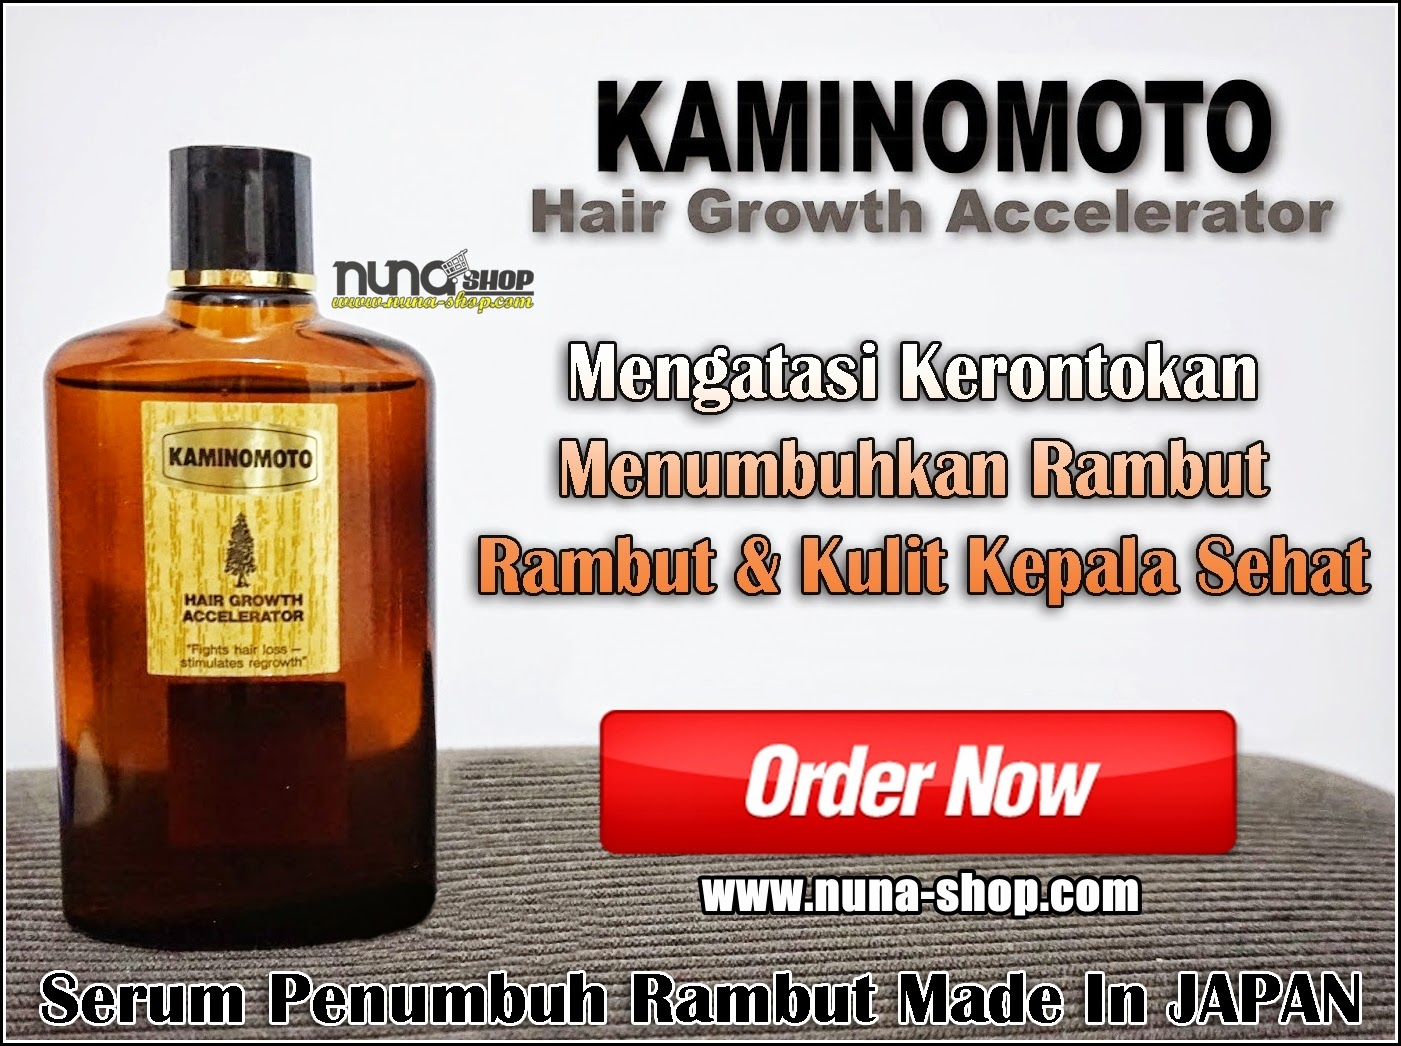 Kaminomoto Hair Growth Accelerator Serum Penumbuh Rambut Anti Botak